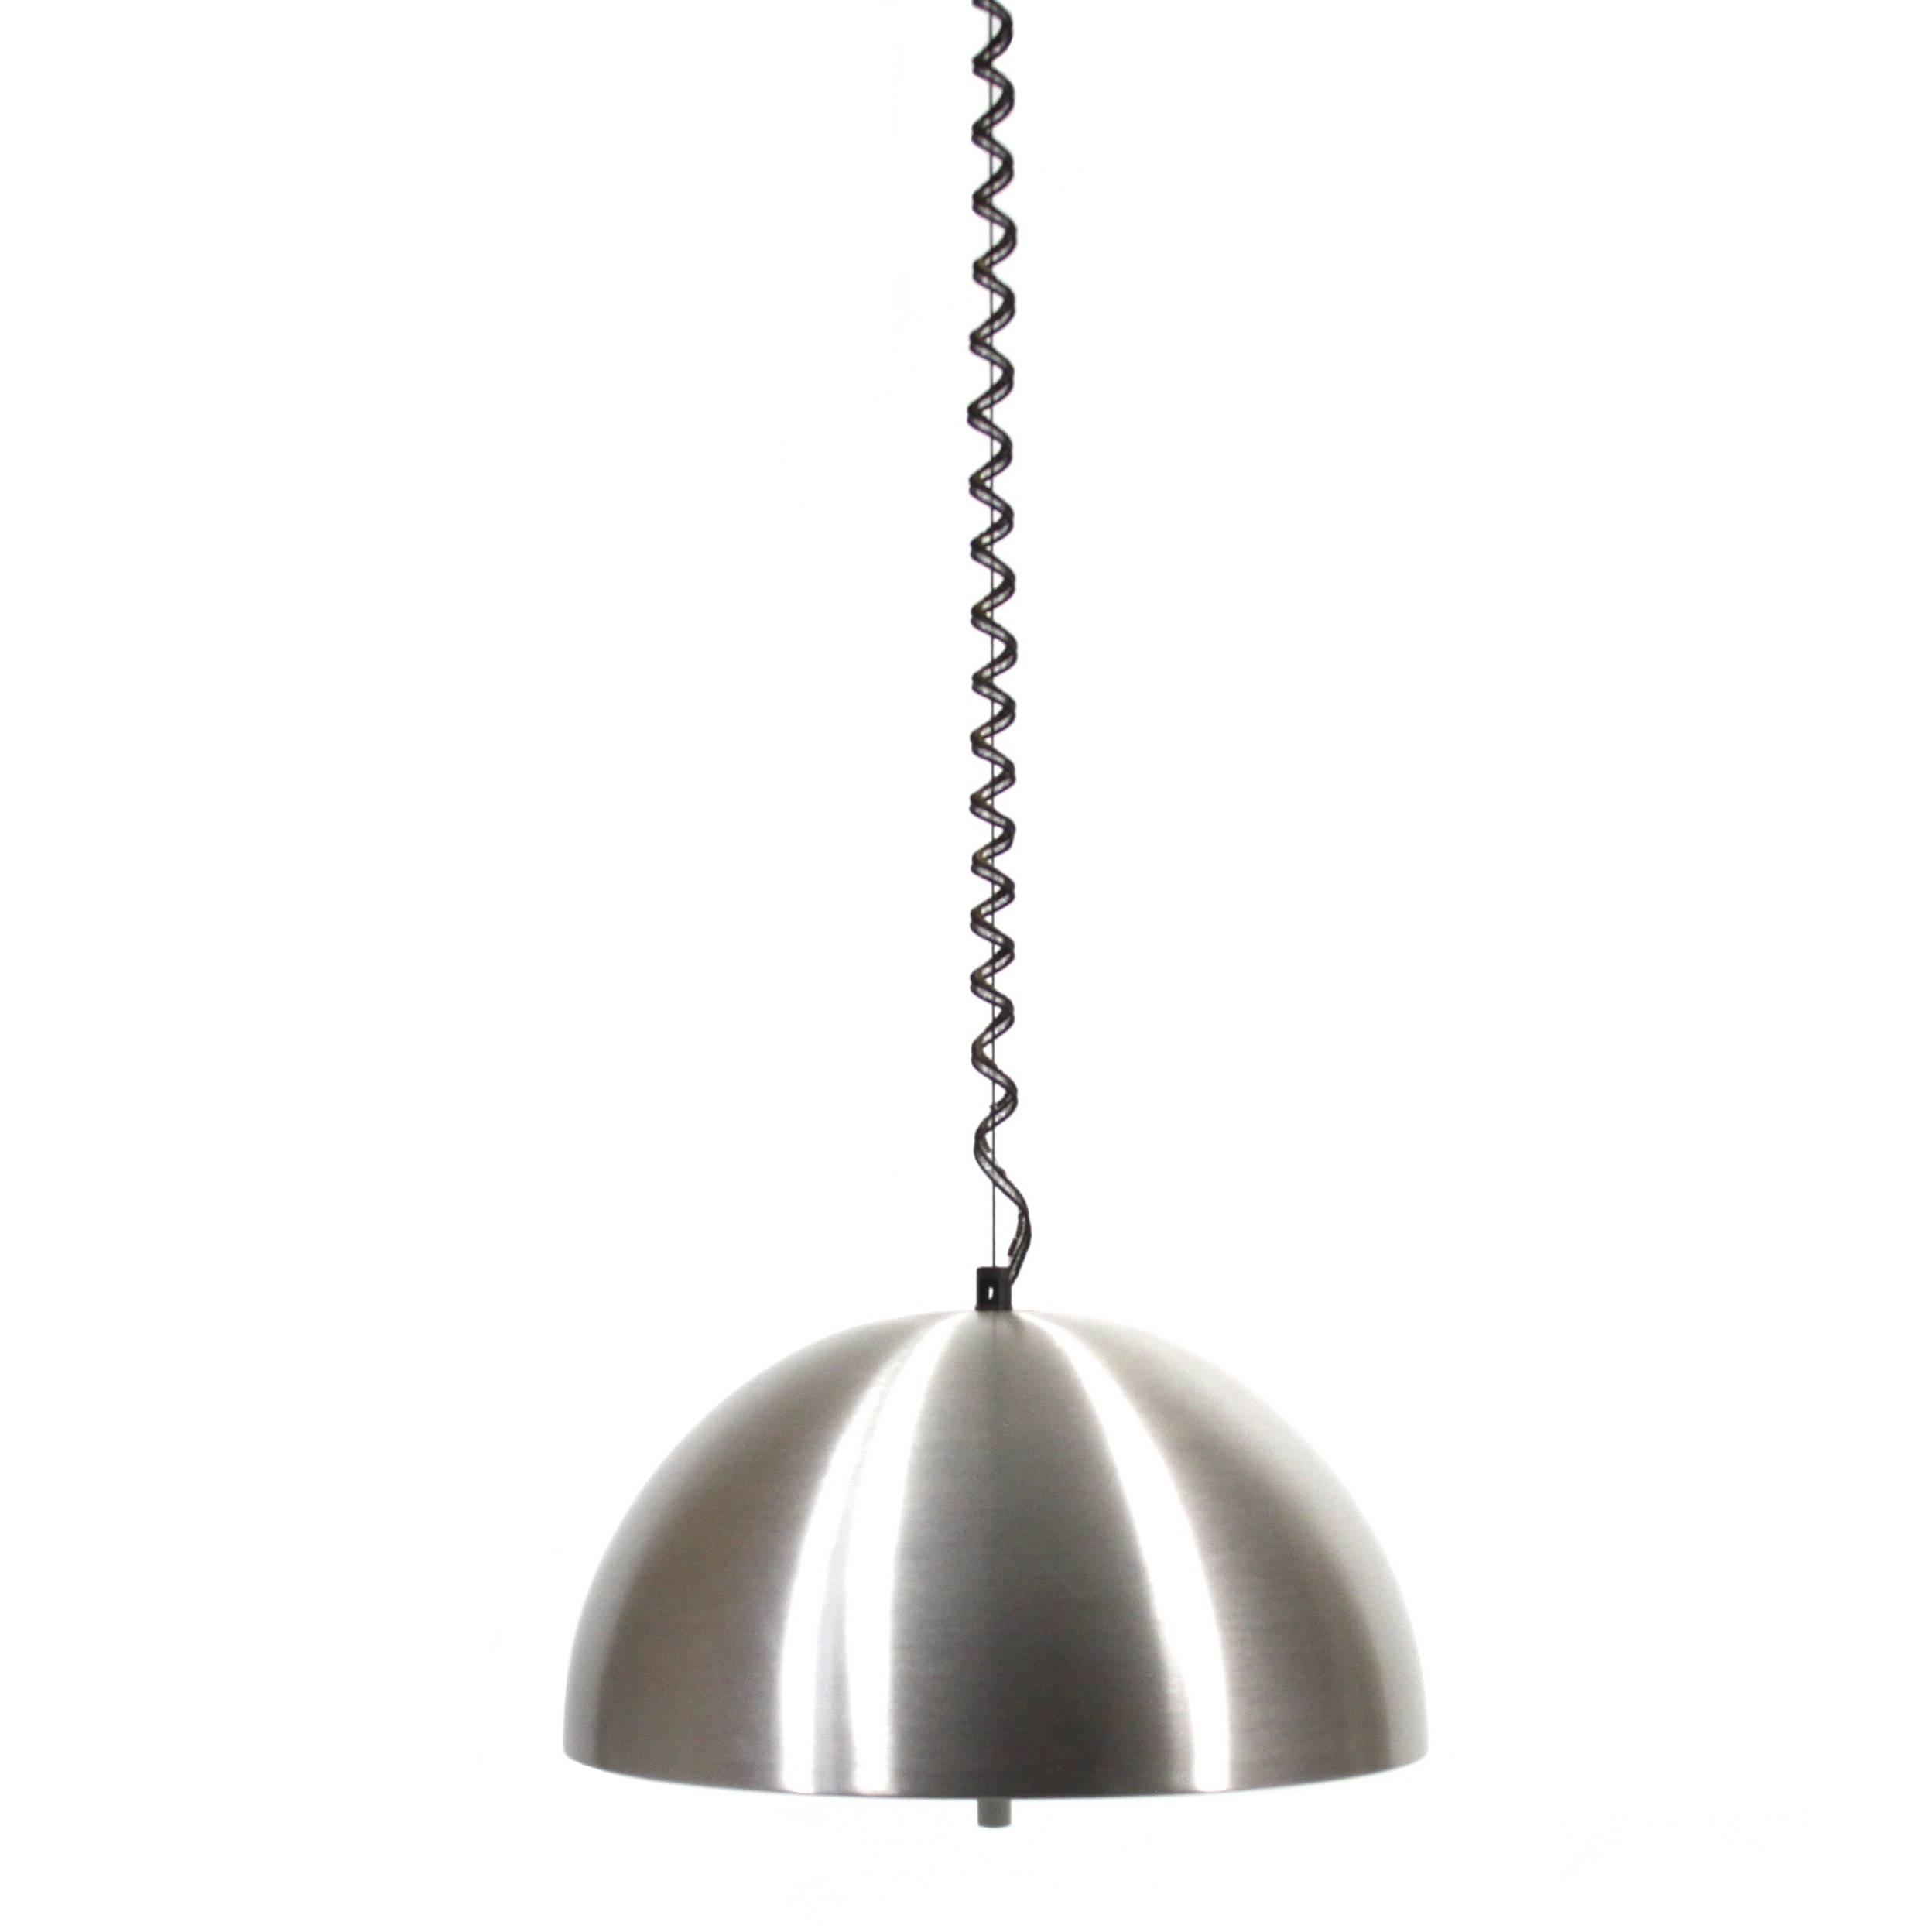 15 photos retractable pendant lights fixtures elegant retractable ceiling light 17 for your instant pendant within retractable pendant lights fixtures image mozeypictures Image collections